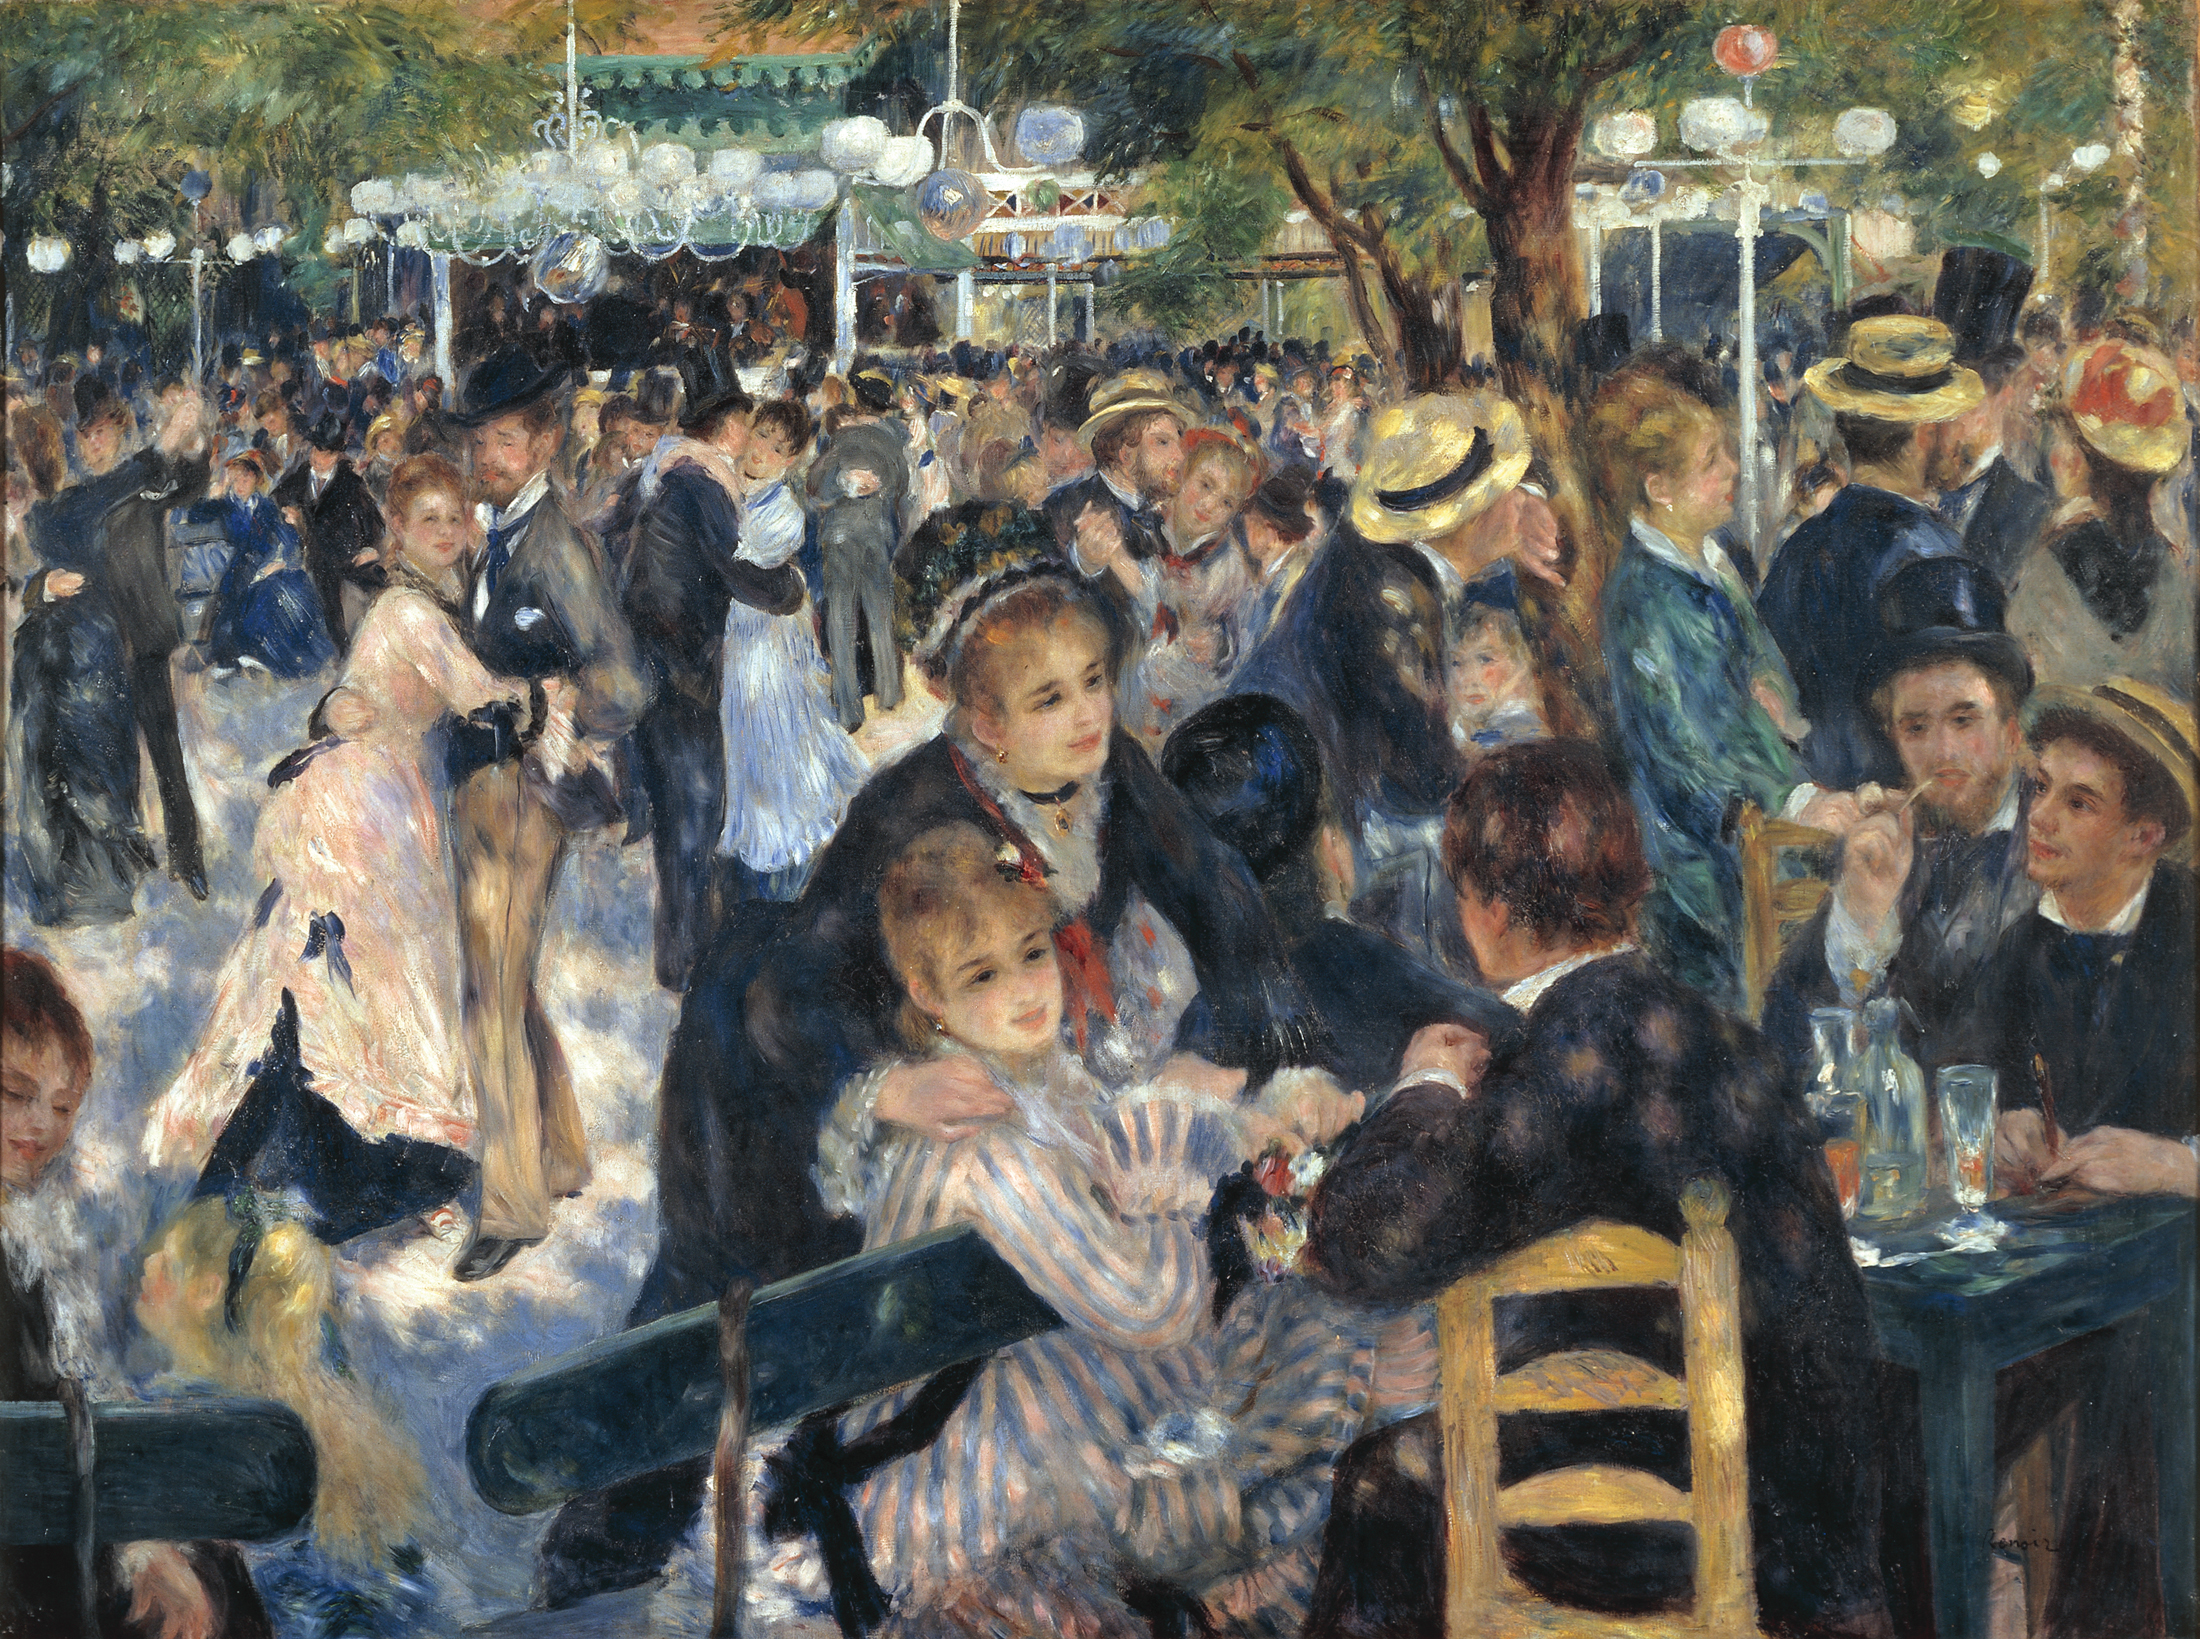 1876 Dance at Moulin de la Galette